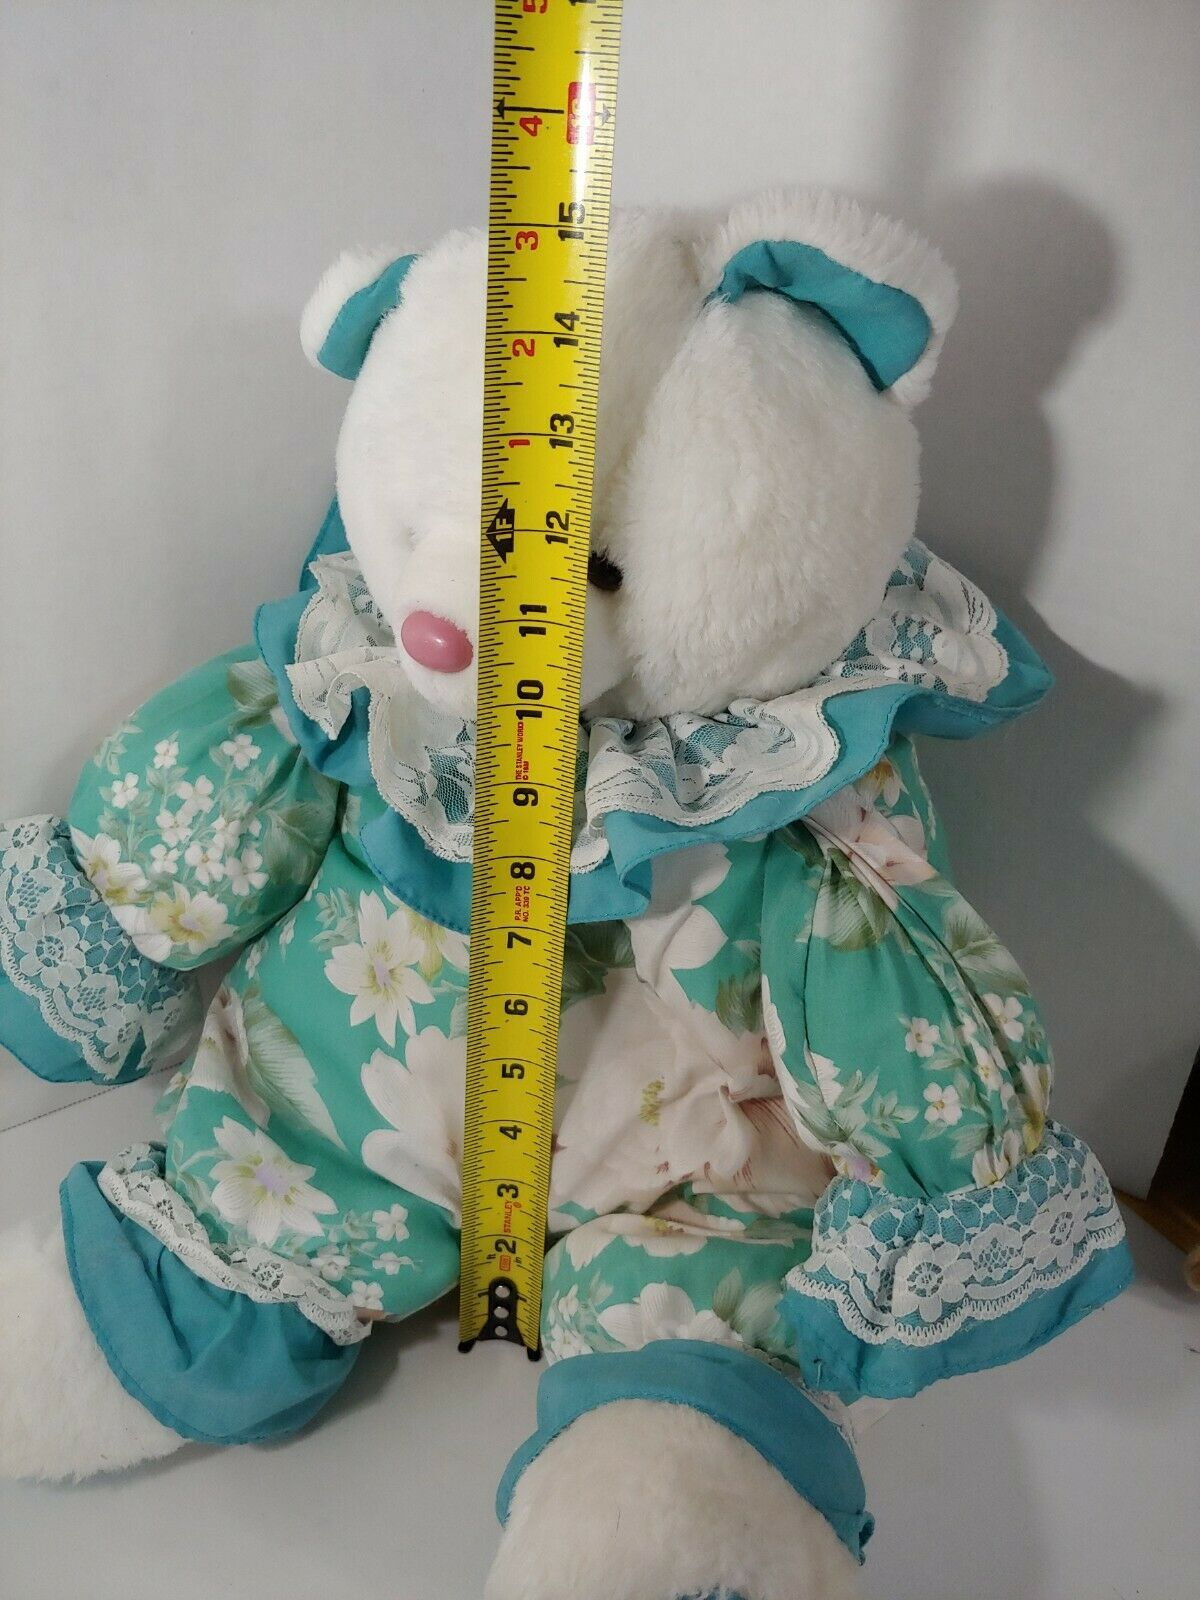 Enesco Plush white teddy bear green floral flowers outfit lace collar pink nose image 2